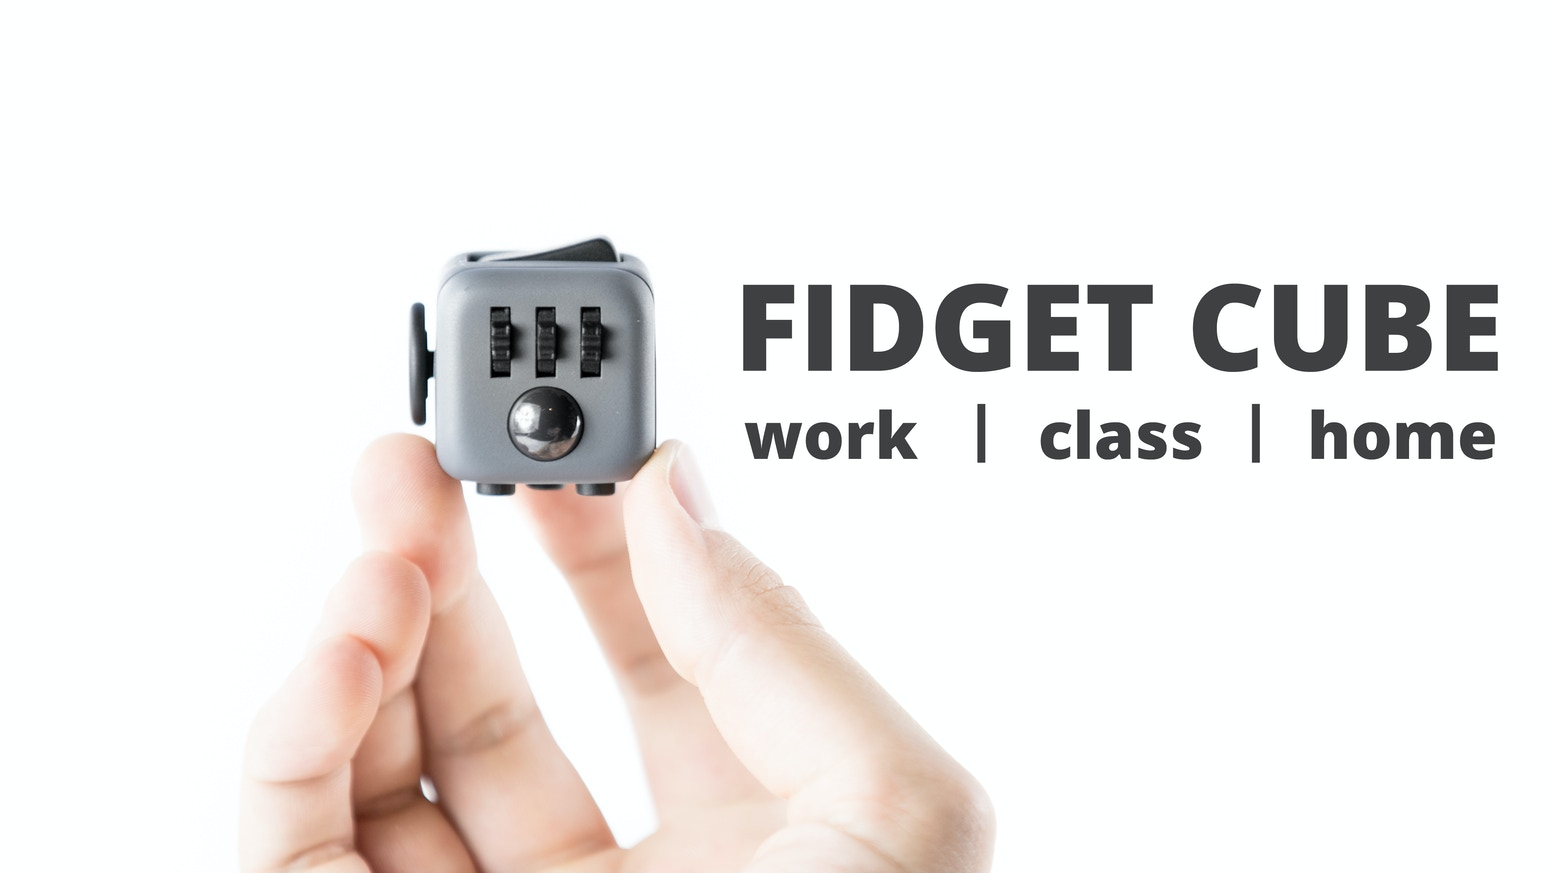 An Unusually Addicting High Quality Desk Toy Designed To Help You Focus Fidget